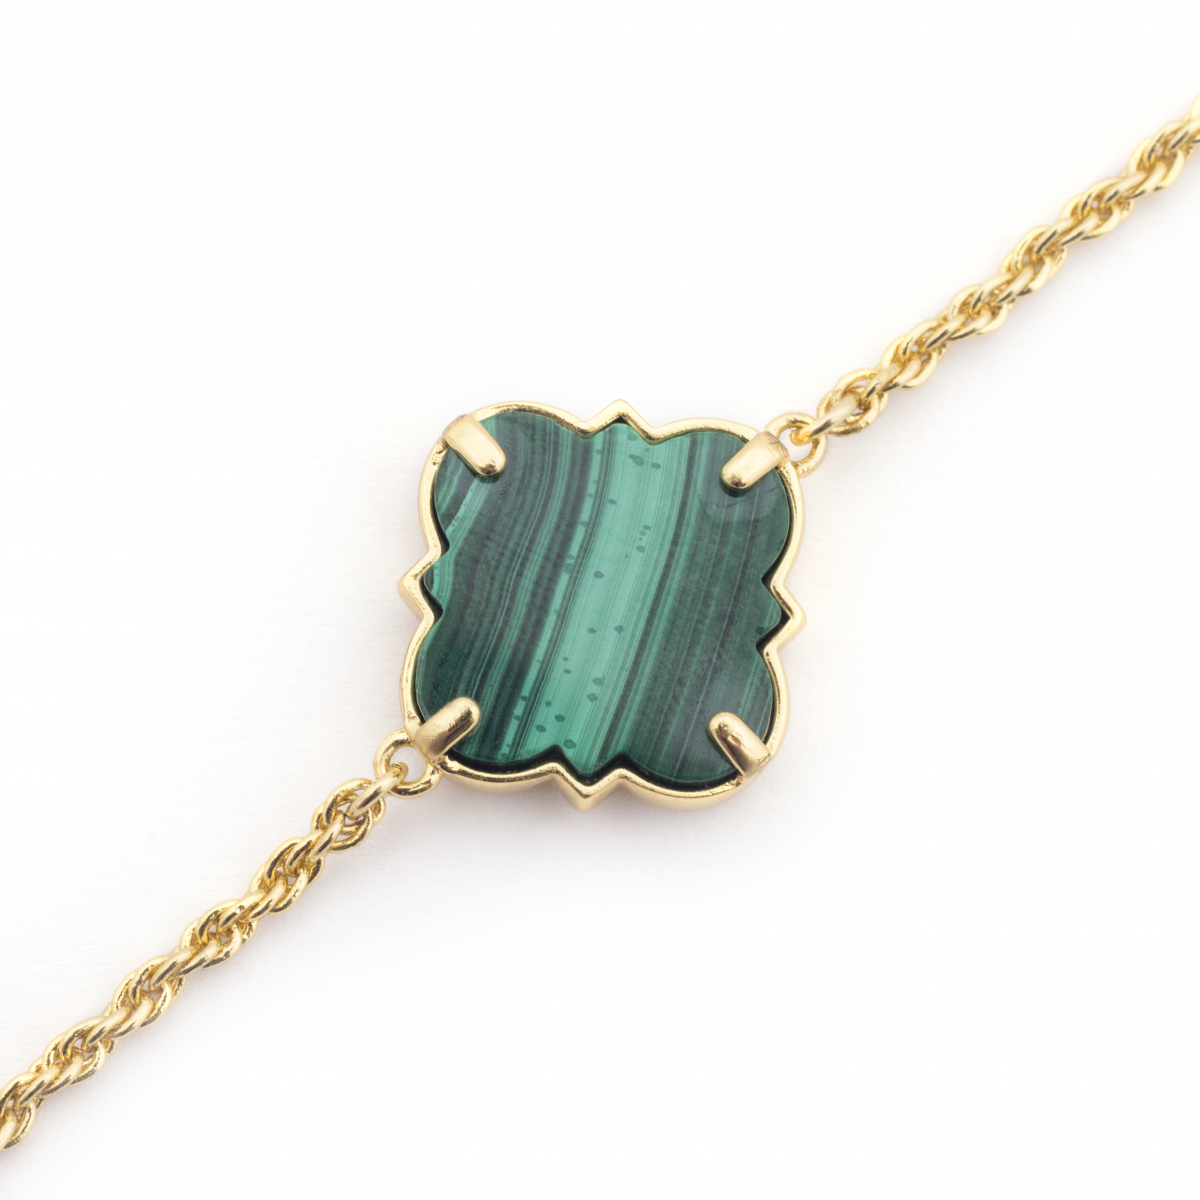 Filigree Morocco Bracelet - Malachite